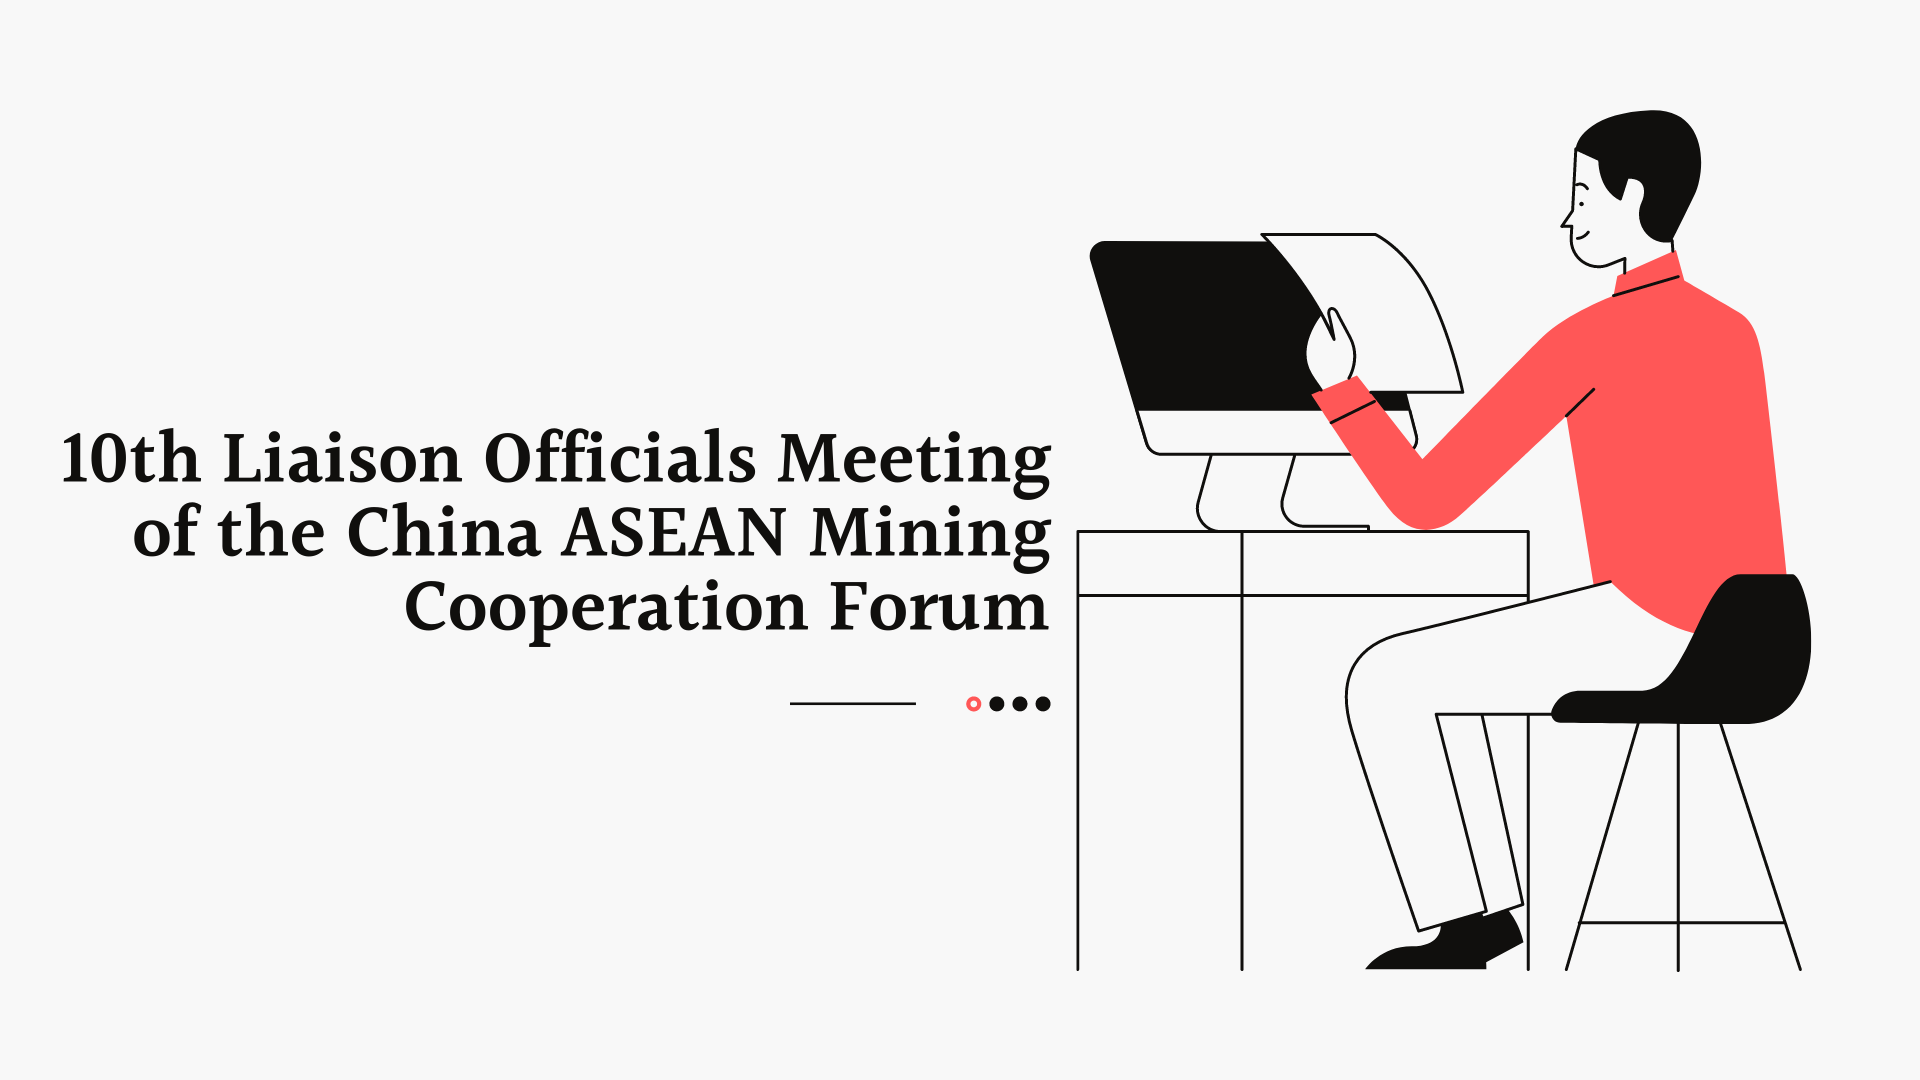 10th Liaison Officials Meeting of the China ASEAN Mining Cooperation Forum